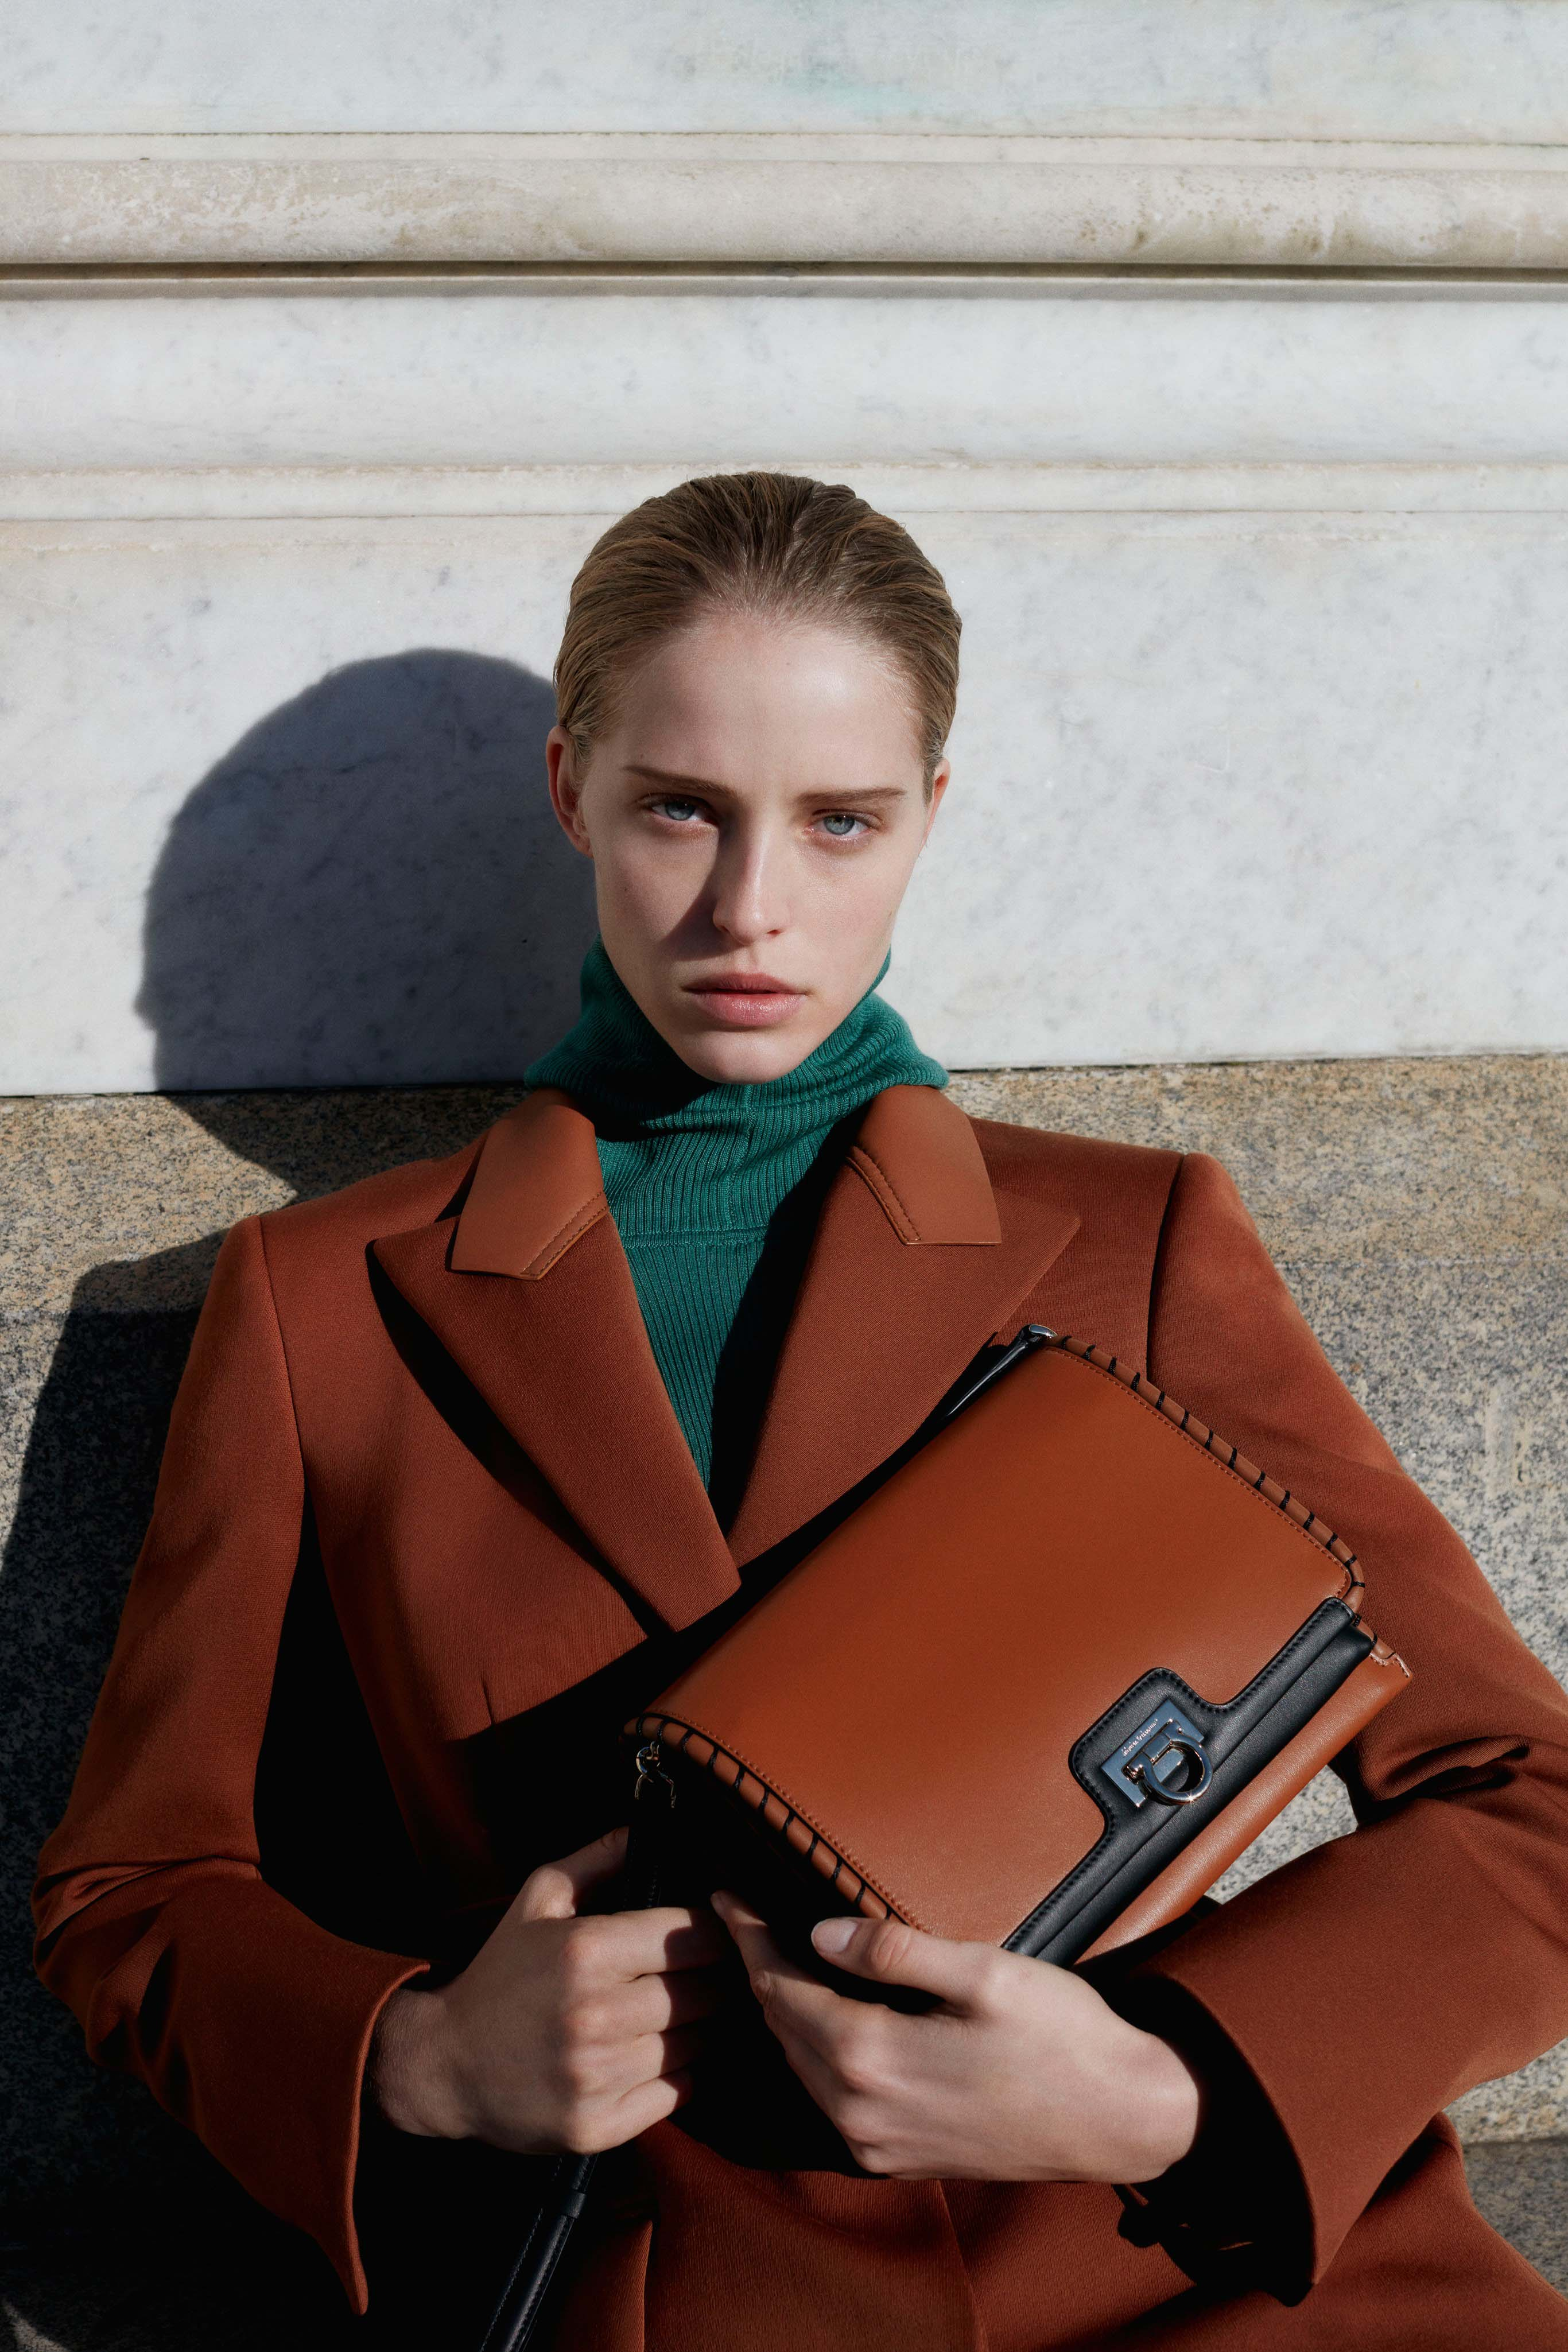 SALVATORE FERRAGAMO Pre fall 2020 Lookbook trends runway coverage Ready To Wear Vogue Suits